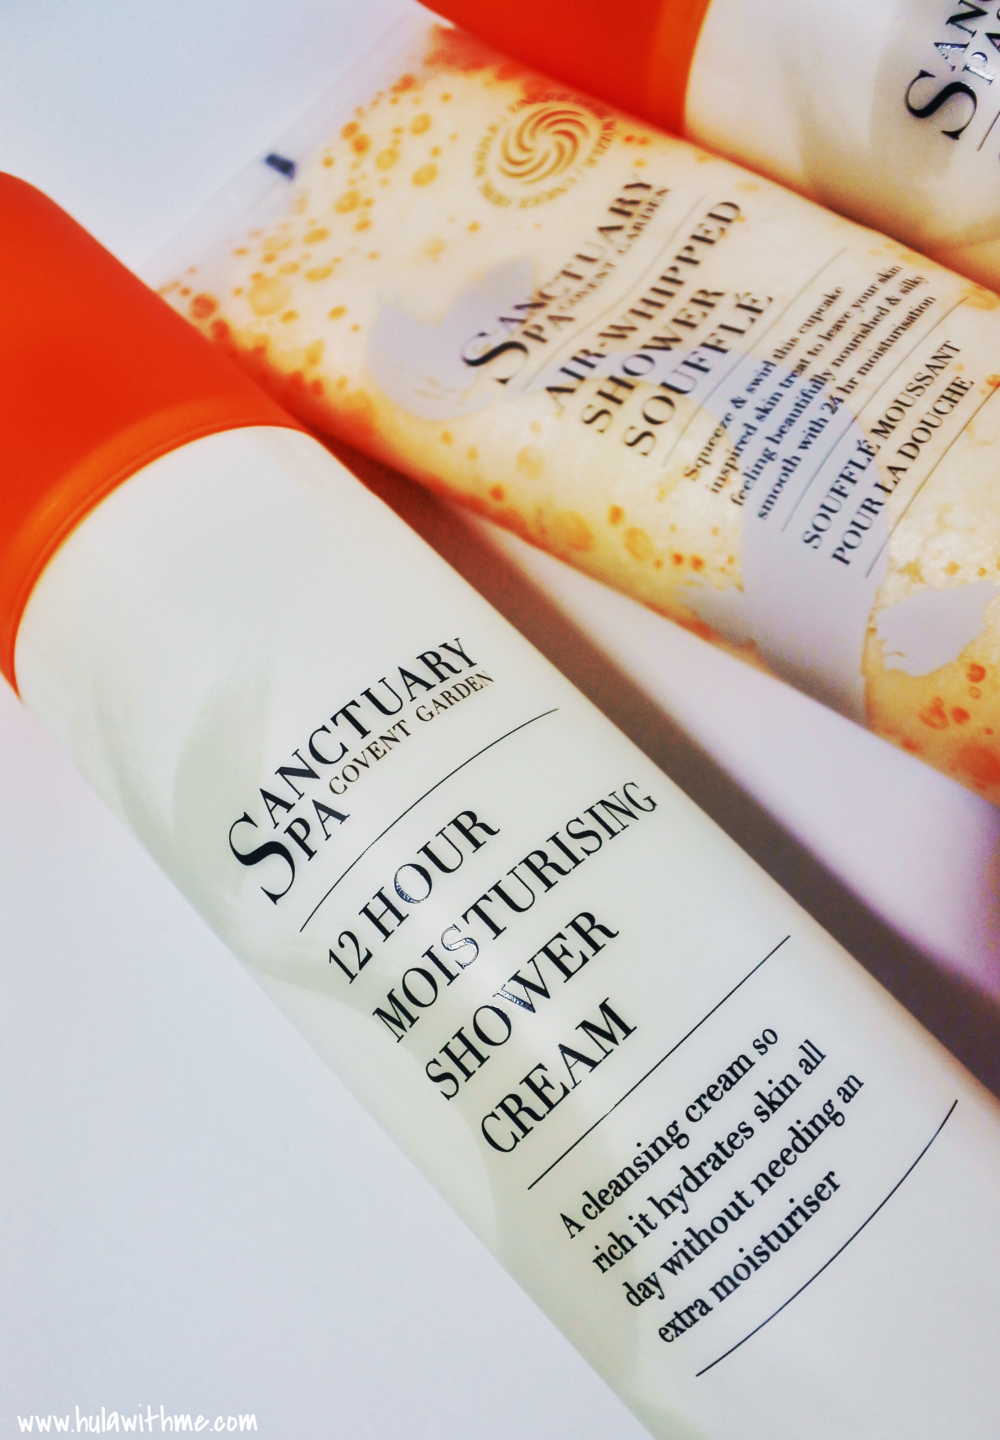 Available at (U.K. Only) -  Sanctuary Spa ,  Boots